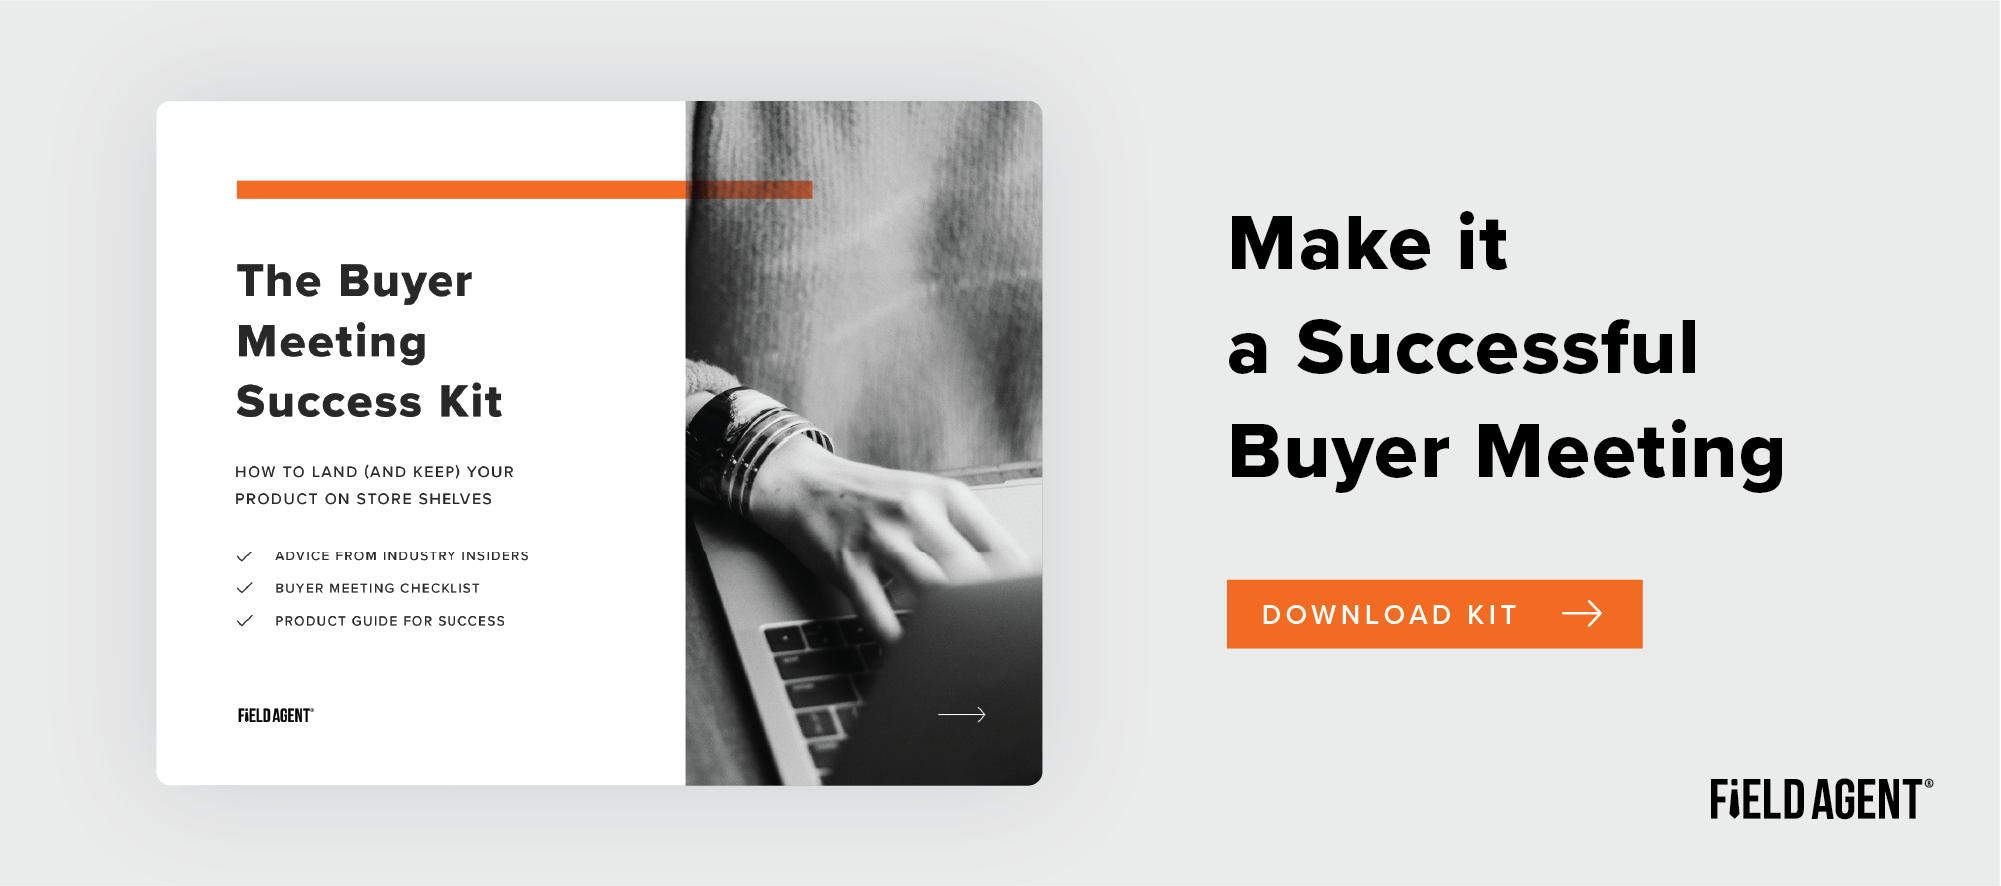 Make it a successful buyer meeting with this free download